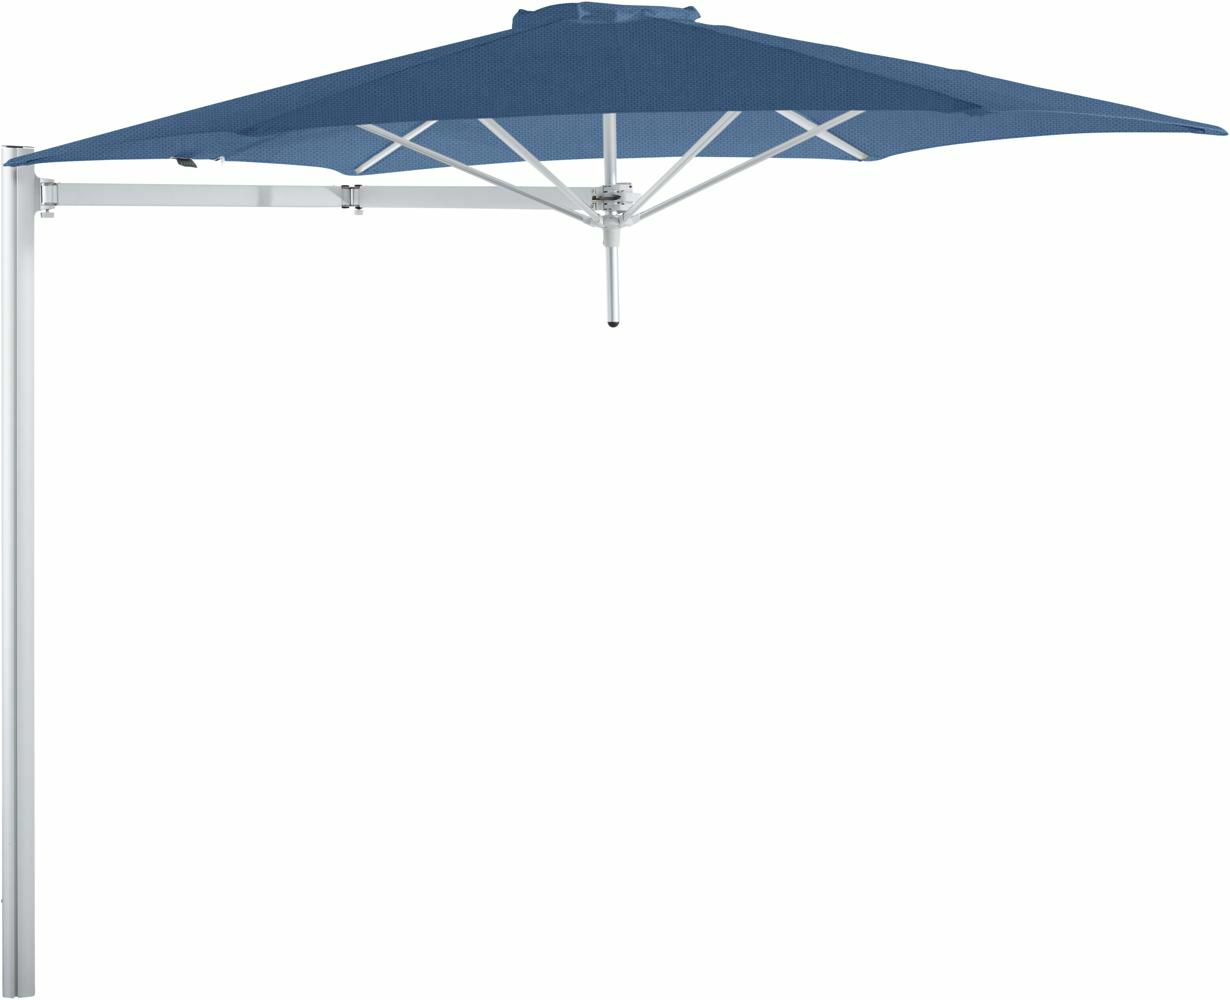 Paraflex cantilever umbrella round 3 m with Blue Storm fabric and a Neo arm